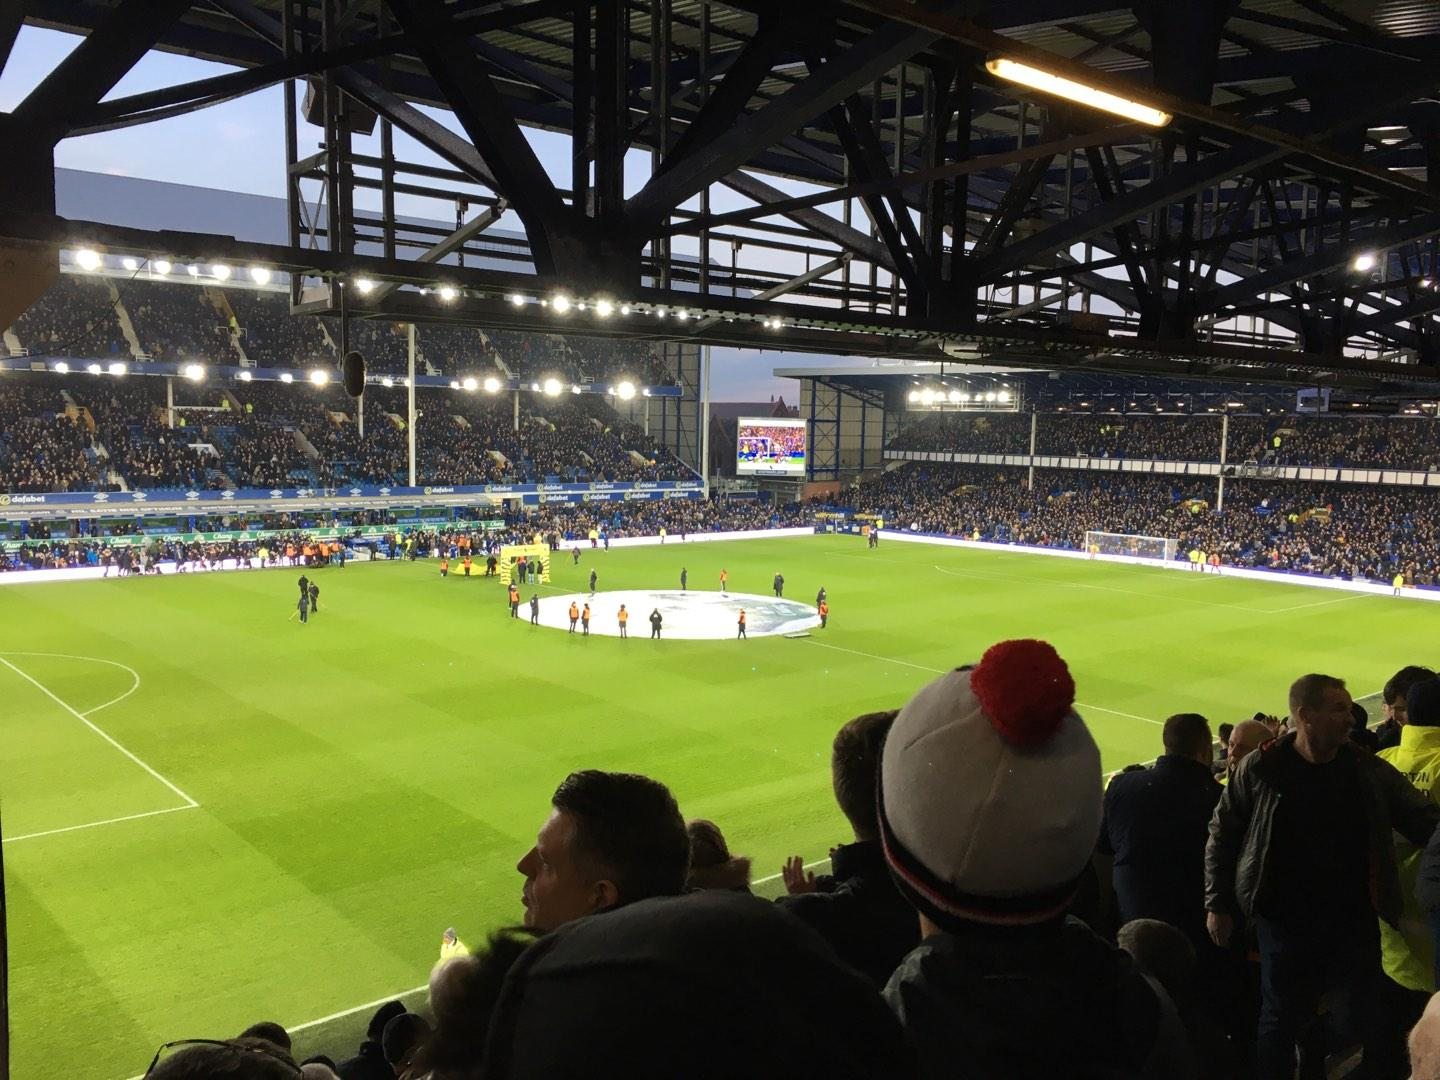 Goodison Park Section UV1 Row L Seat 0044